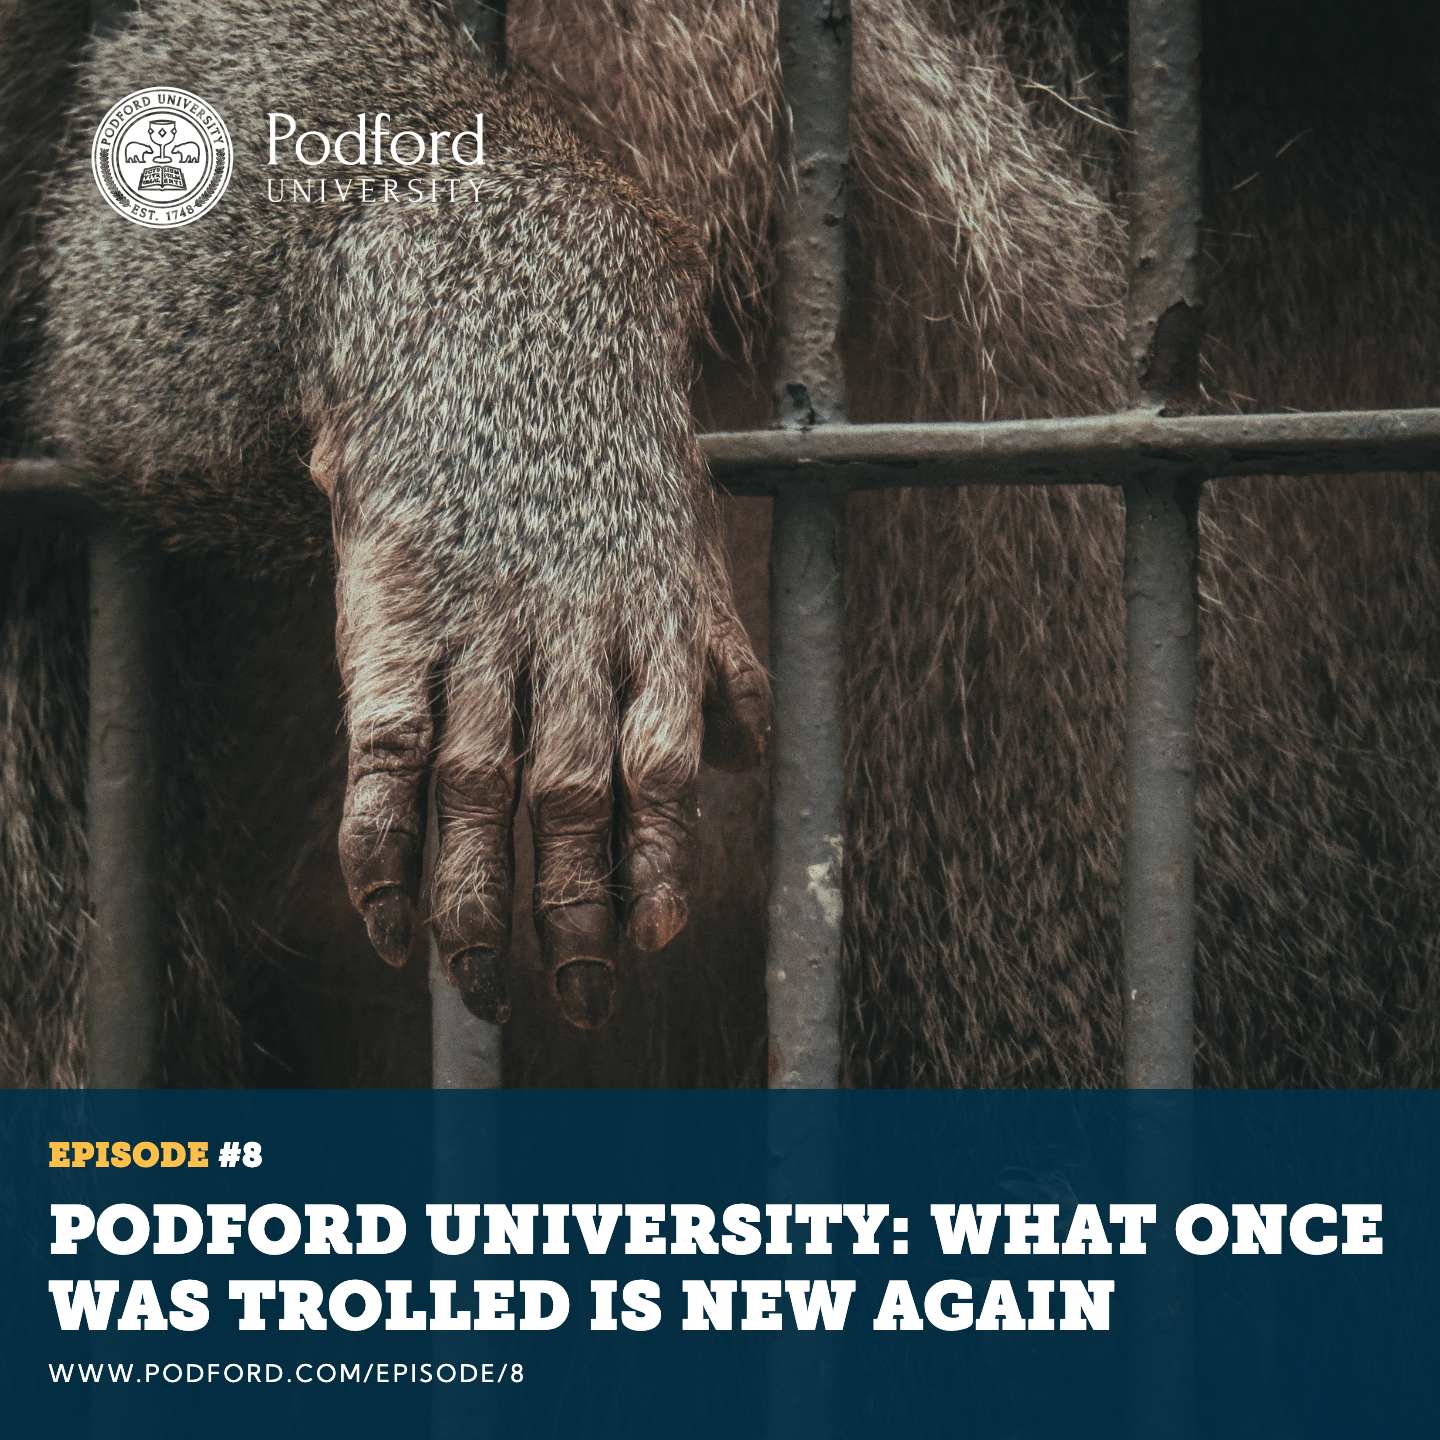 Podford University: What Once Was Trolled is New Again